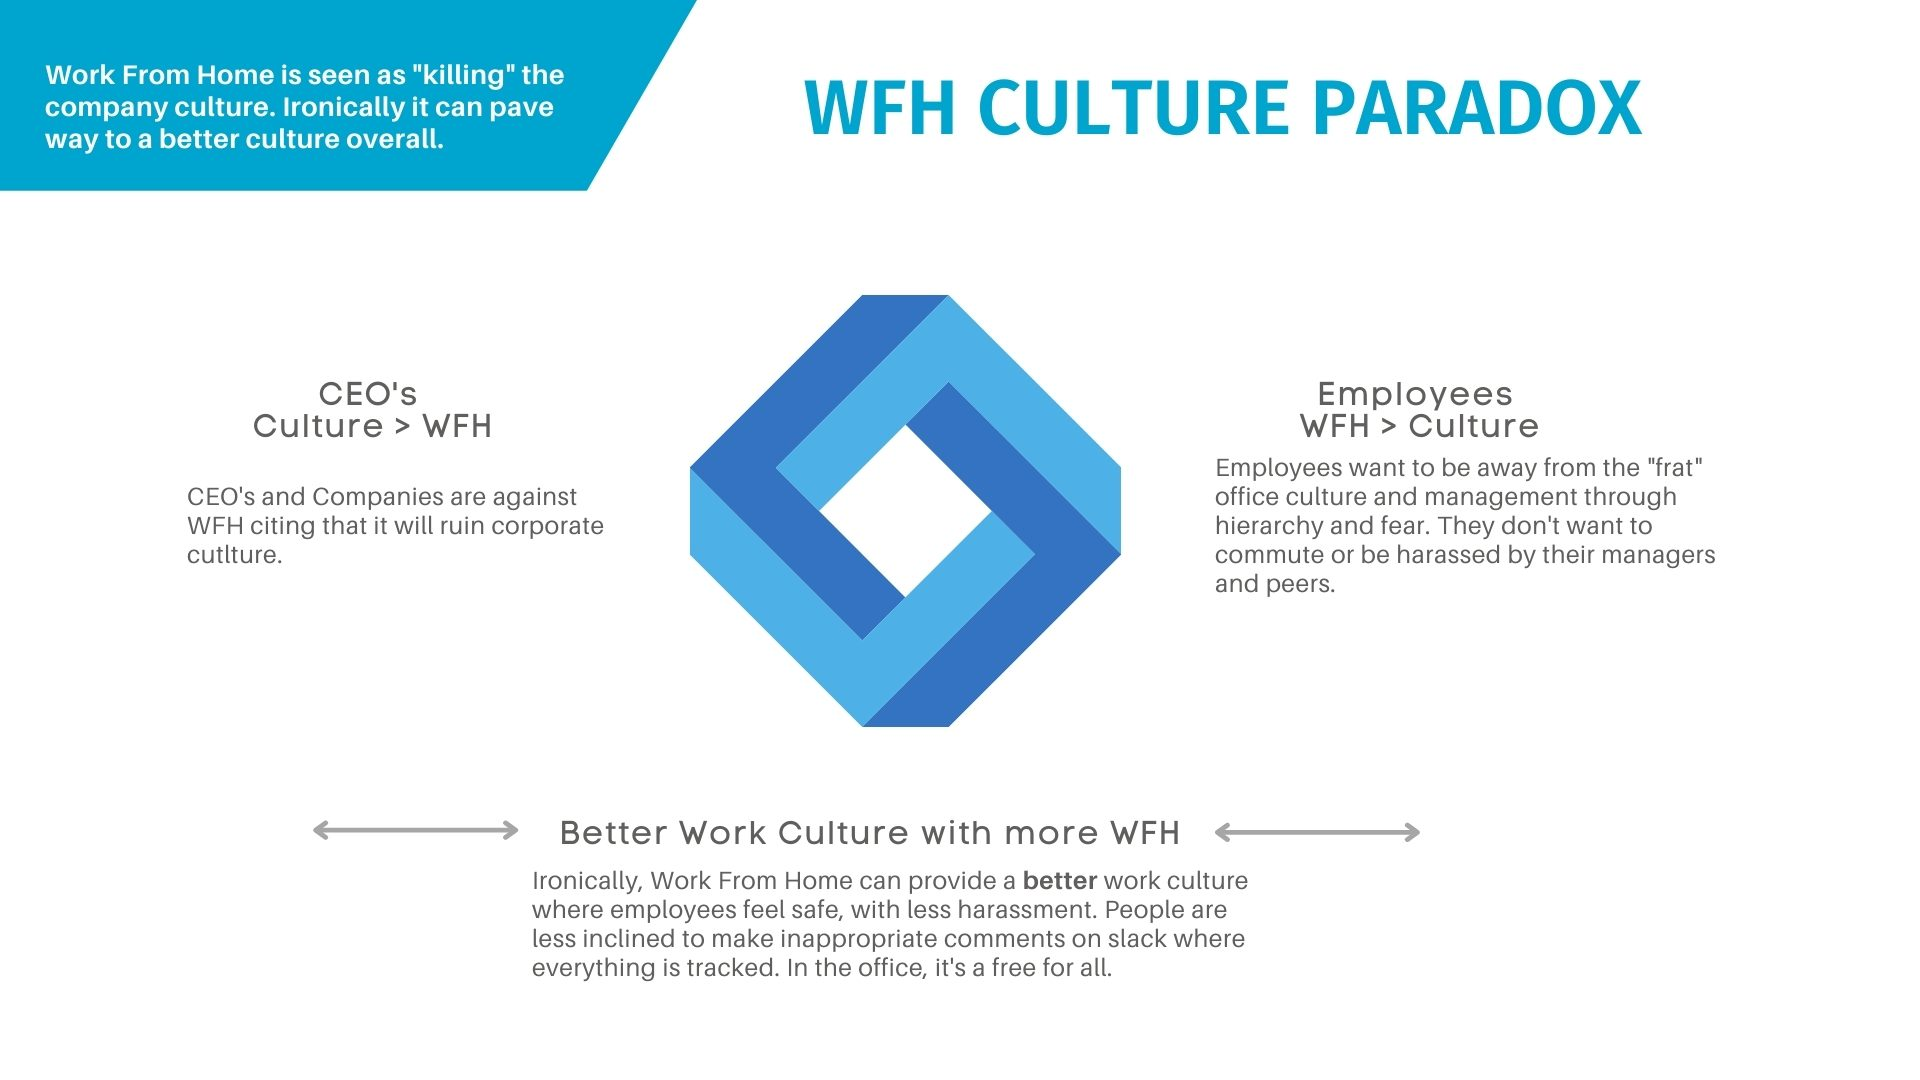 WFH and corp culture paradox